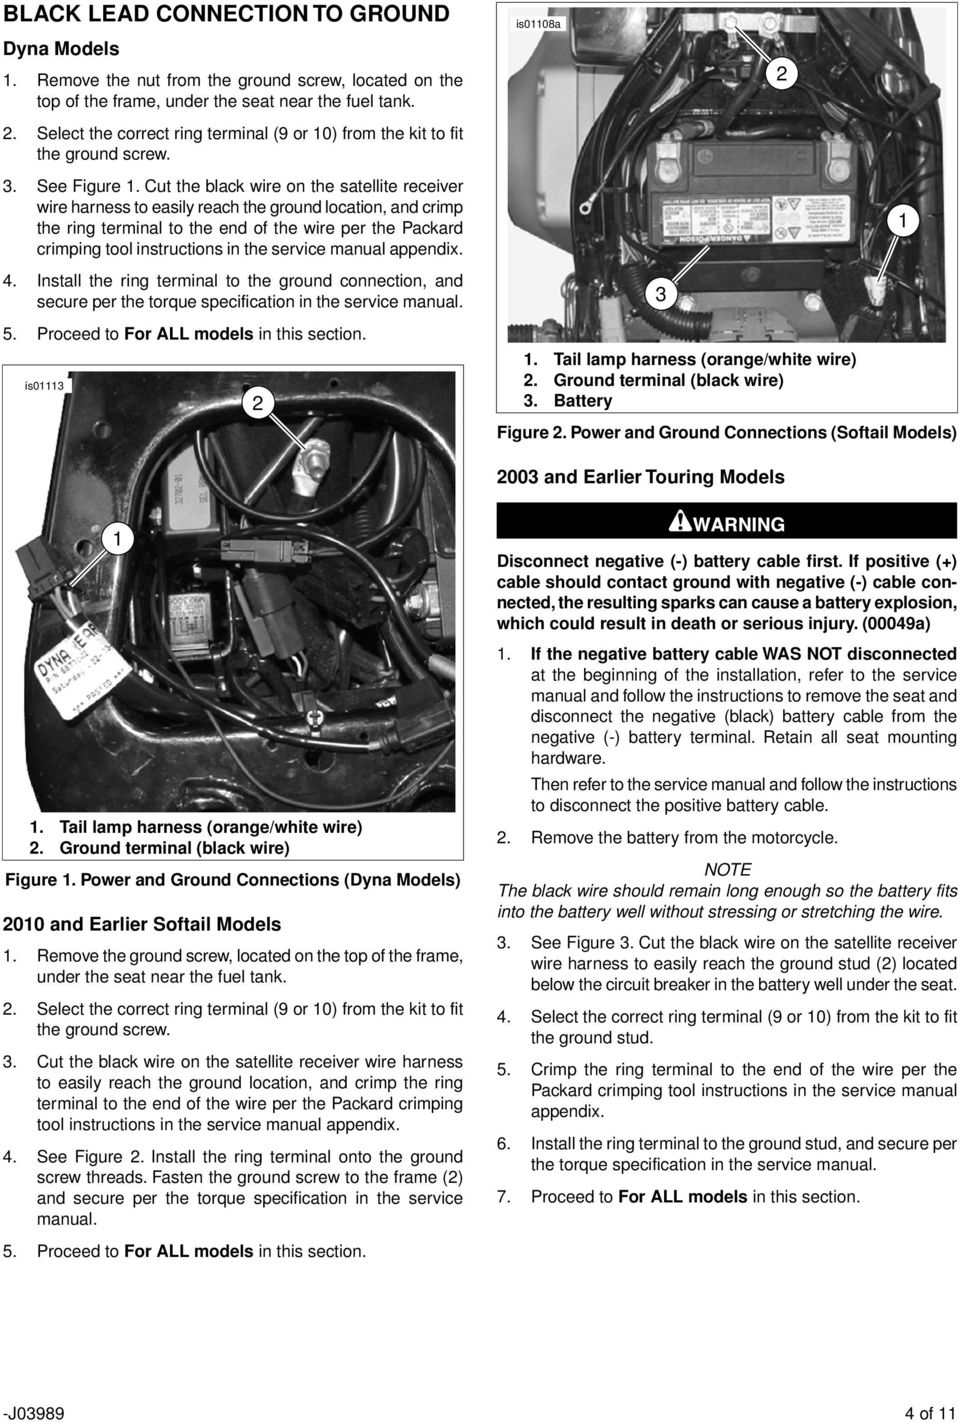 Road Tech Xm Satellite Radio Receiver Kit Pdf Fxd Wiring Harness Cut The Black Wire On To Easily Reach Ground Location